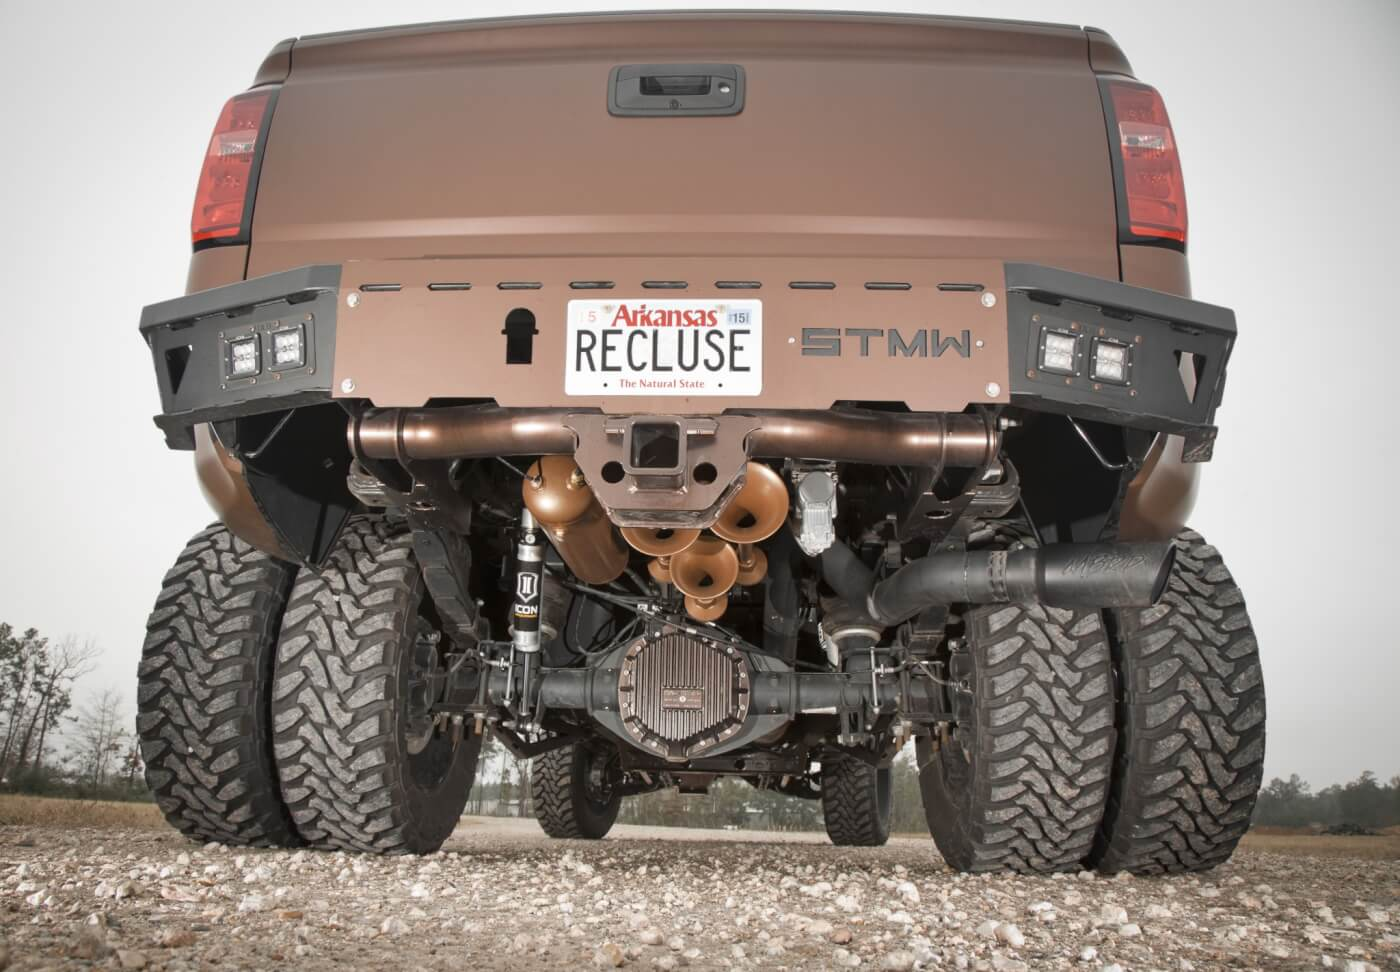 Under the rear of the truck, a set of 5-inch lift leaf springs from Atlas complements the McGaughys front suspension. As with the front, Icon Vehicle Dynamic¬¬ shocks are used. A set of Firestone air bags helps keep the truck level, even with a full load. To feed the air bags and HornBlasters air horns, a Viair compressor system was also installed. The final upgrade under the bumper is the Mag-Hytec differential cover. Regarding the bumper, it's from ShowTime Metal Works. It works with the rear receiver hitch and sports two pairs of OLB LED lights on each corner.